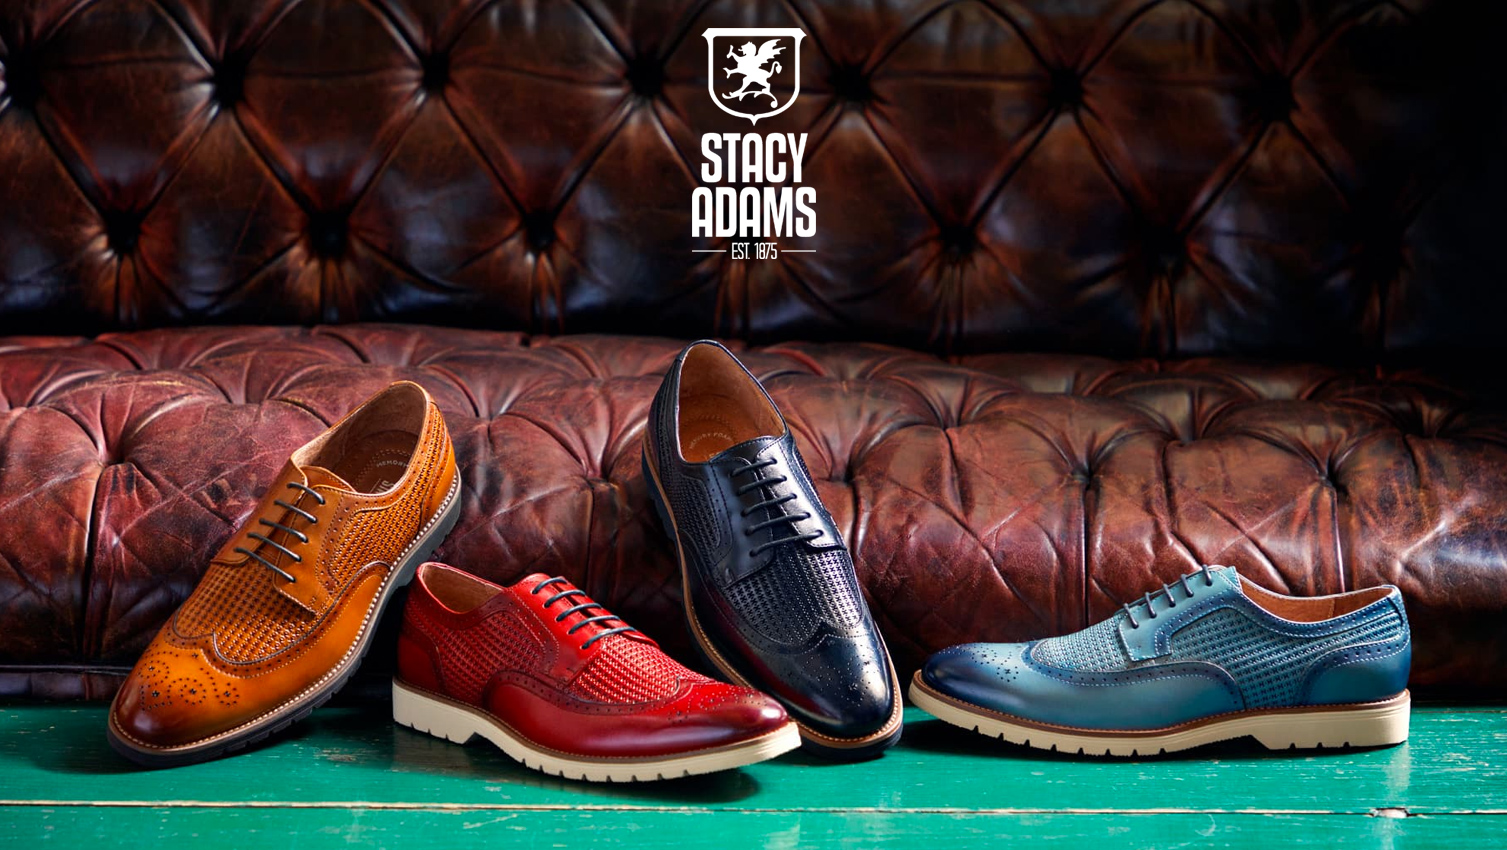 433657dcbf63 Make a statement wearing legendary dress oxfords or trendy sneakers from Stacy  Adams. Men who know style and Stacy Adams have been a perfect fit for over  ...